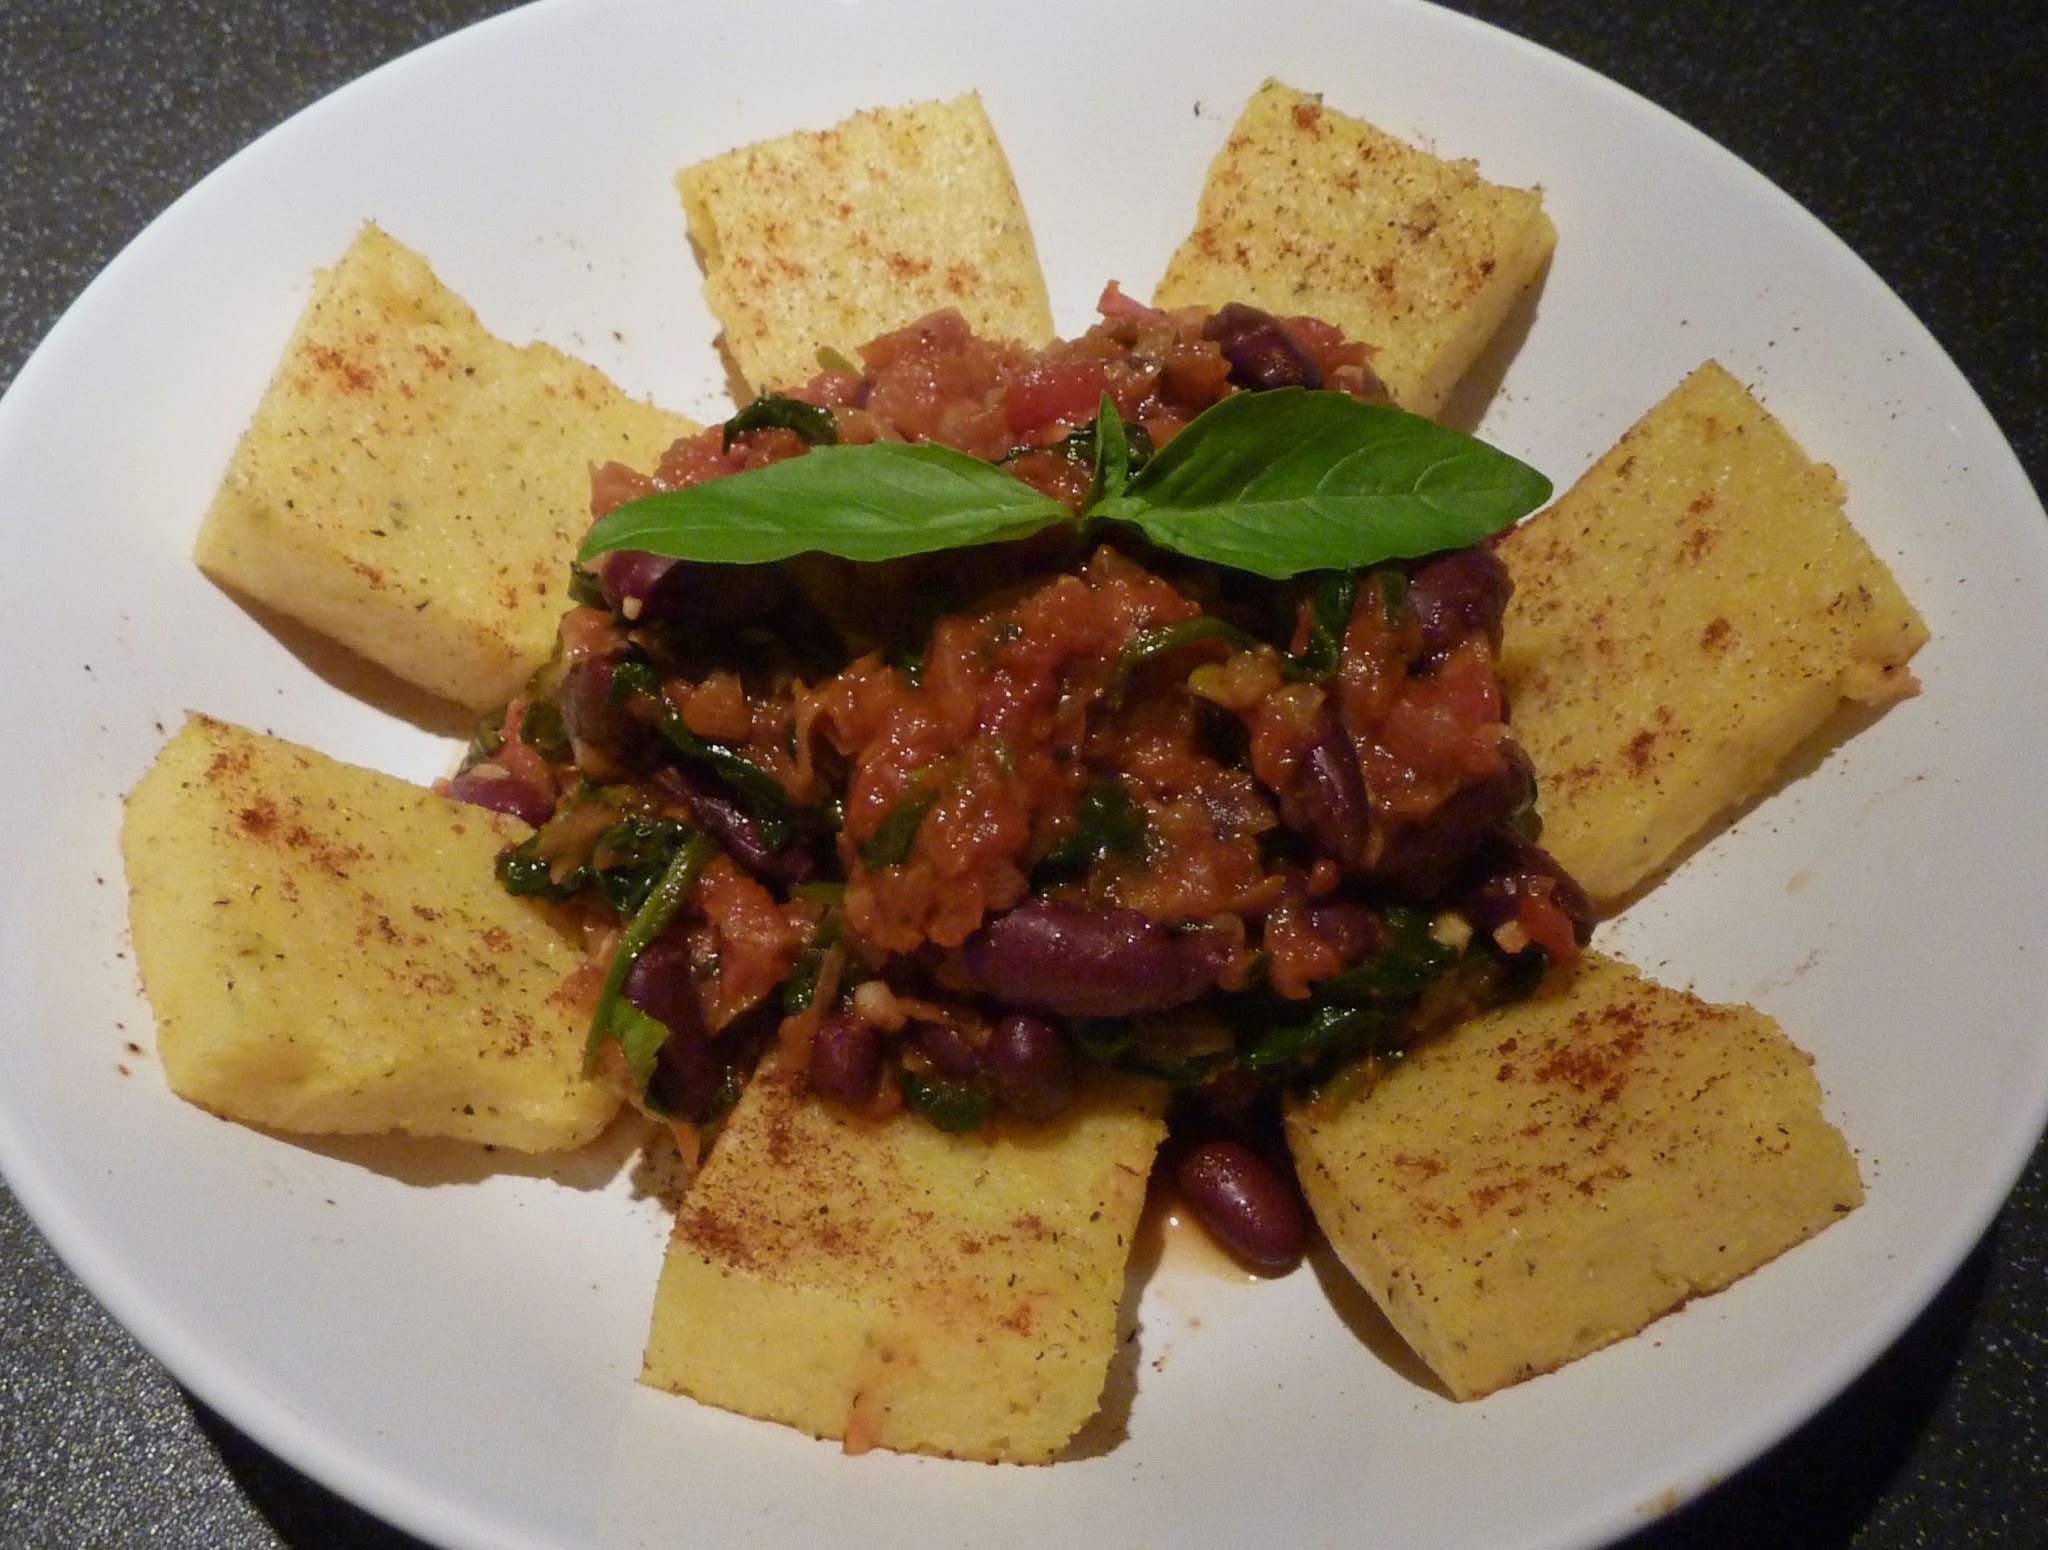 Spicy polenta with greens and beans